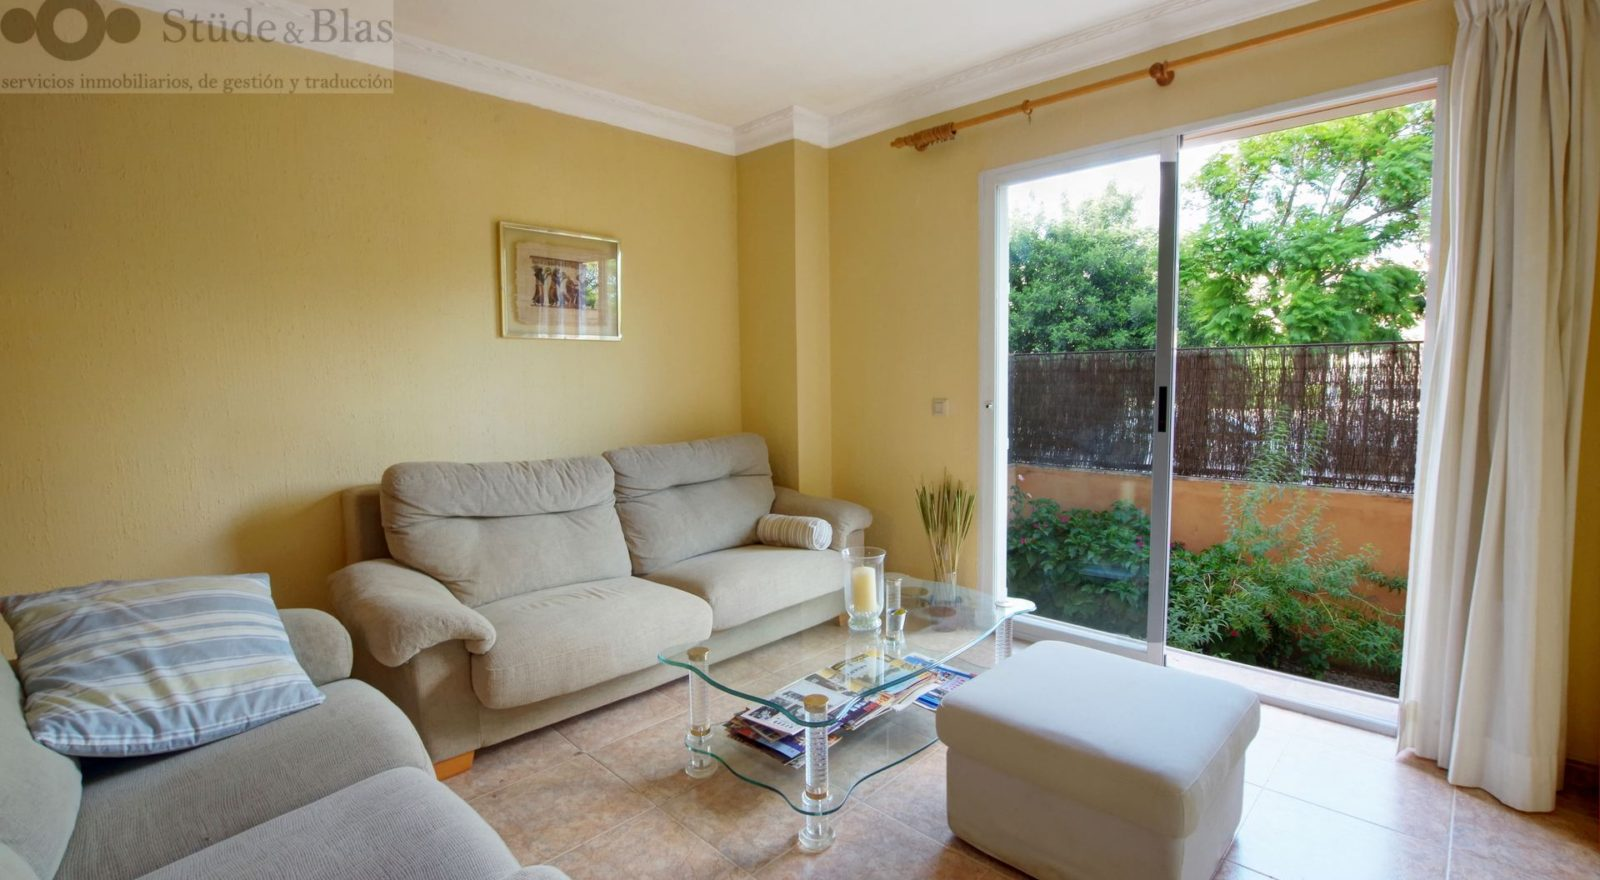 Apartment for sale, Ground floor in the area of Son Serra Perera in Palma